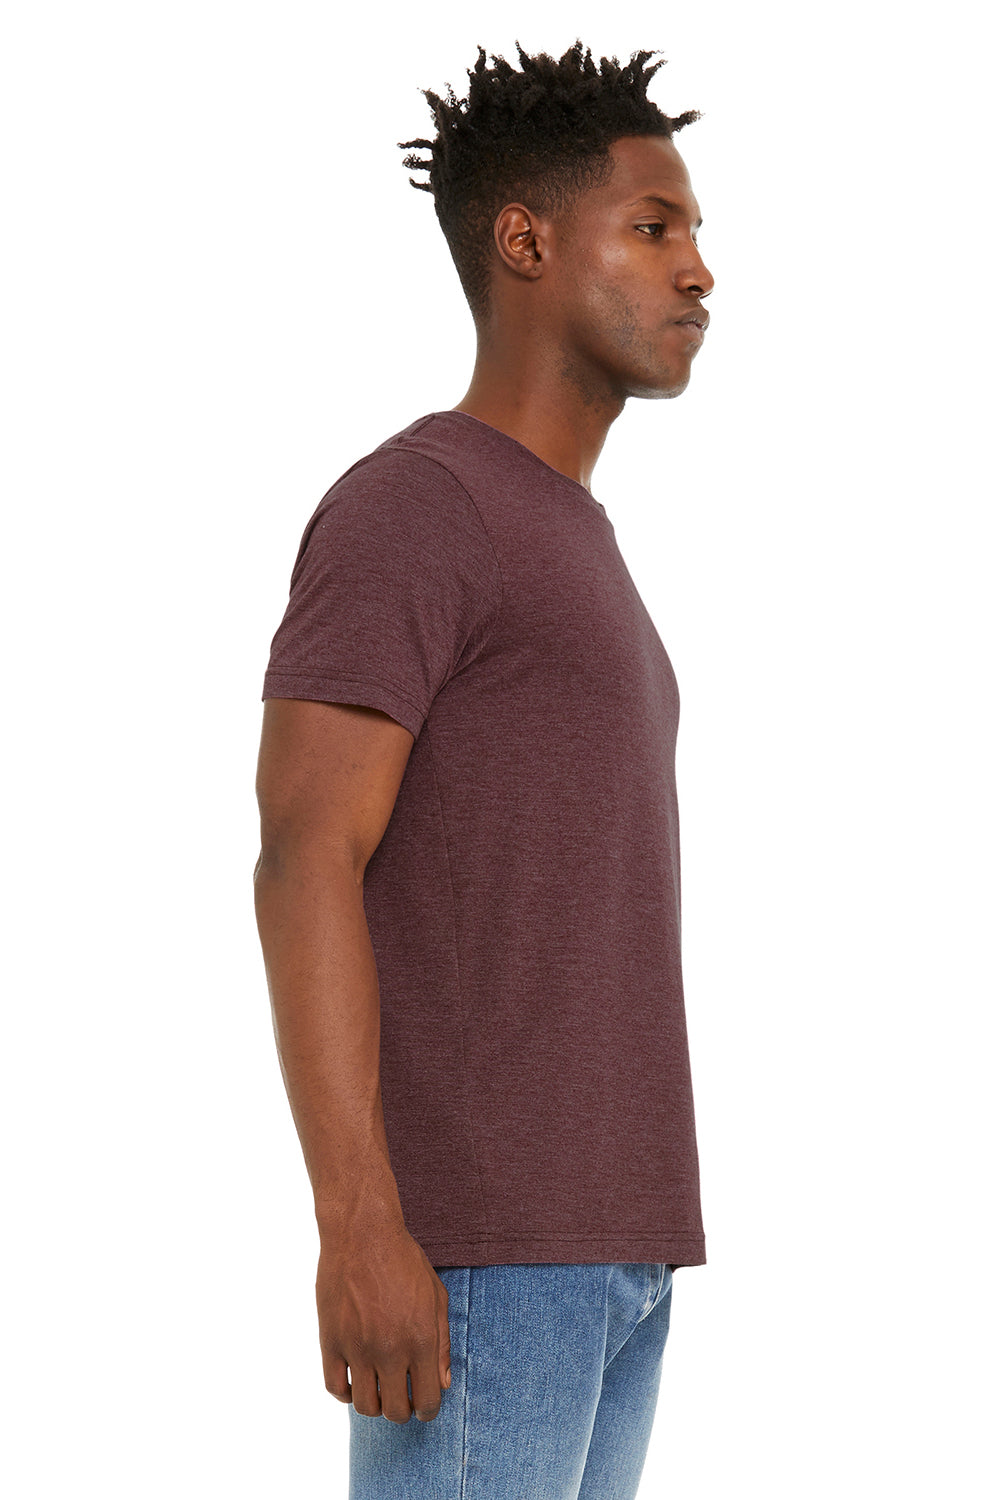 Bella + Canvas BC3301 Jersey Short Sleeve Crewneck T-Shirt Heather Maroon Side